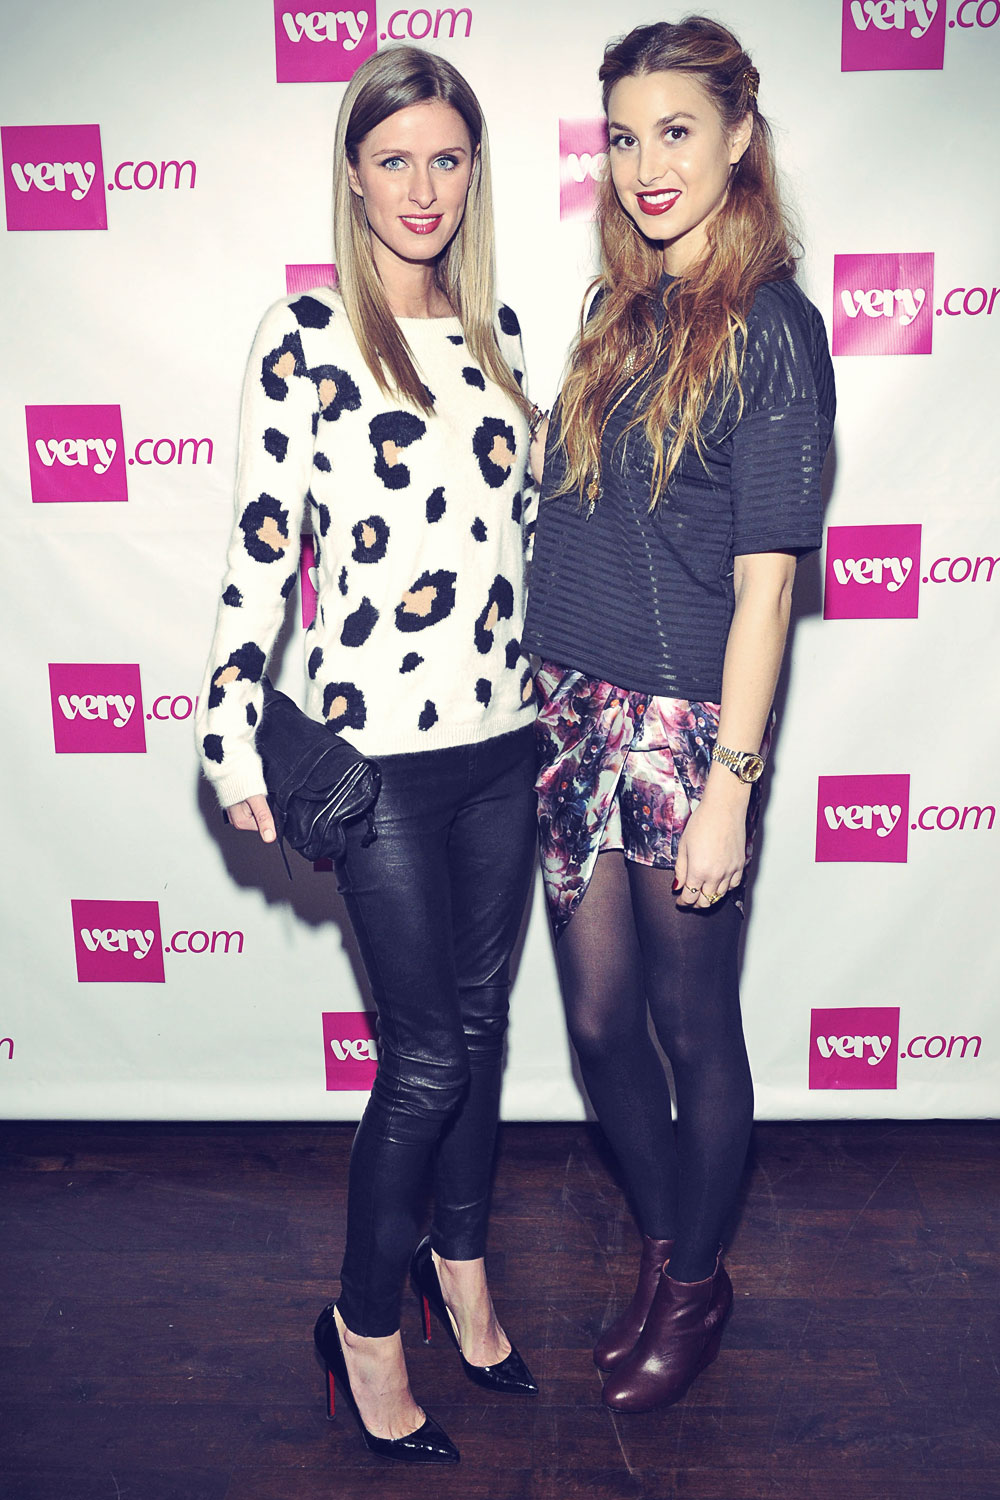 Nicky Hilton and Whitney Port launch event